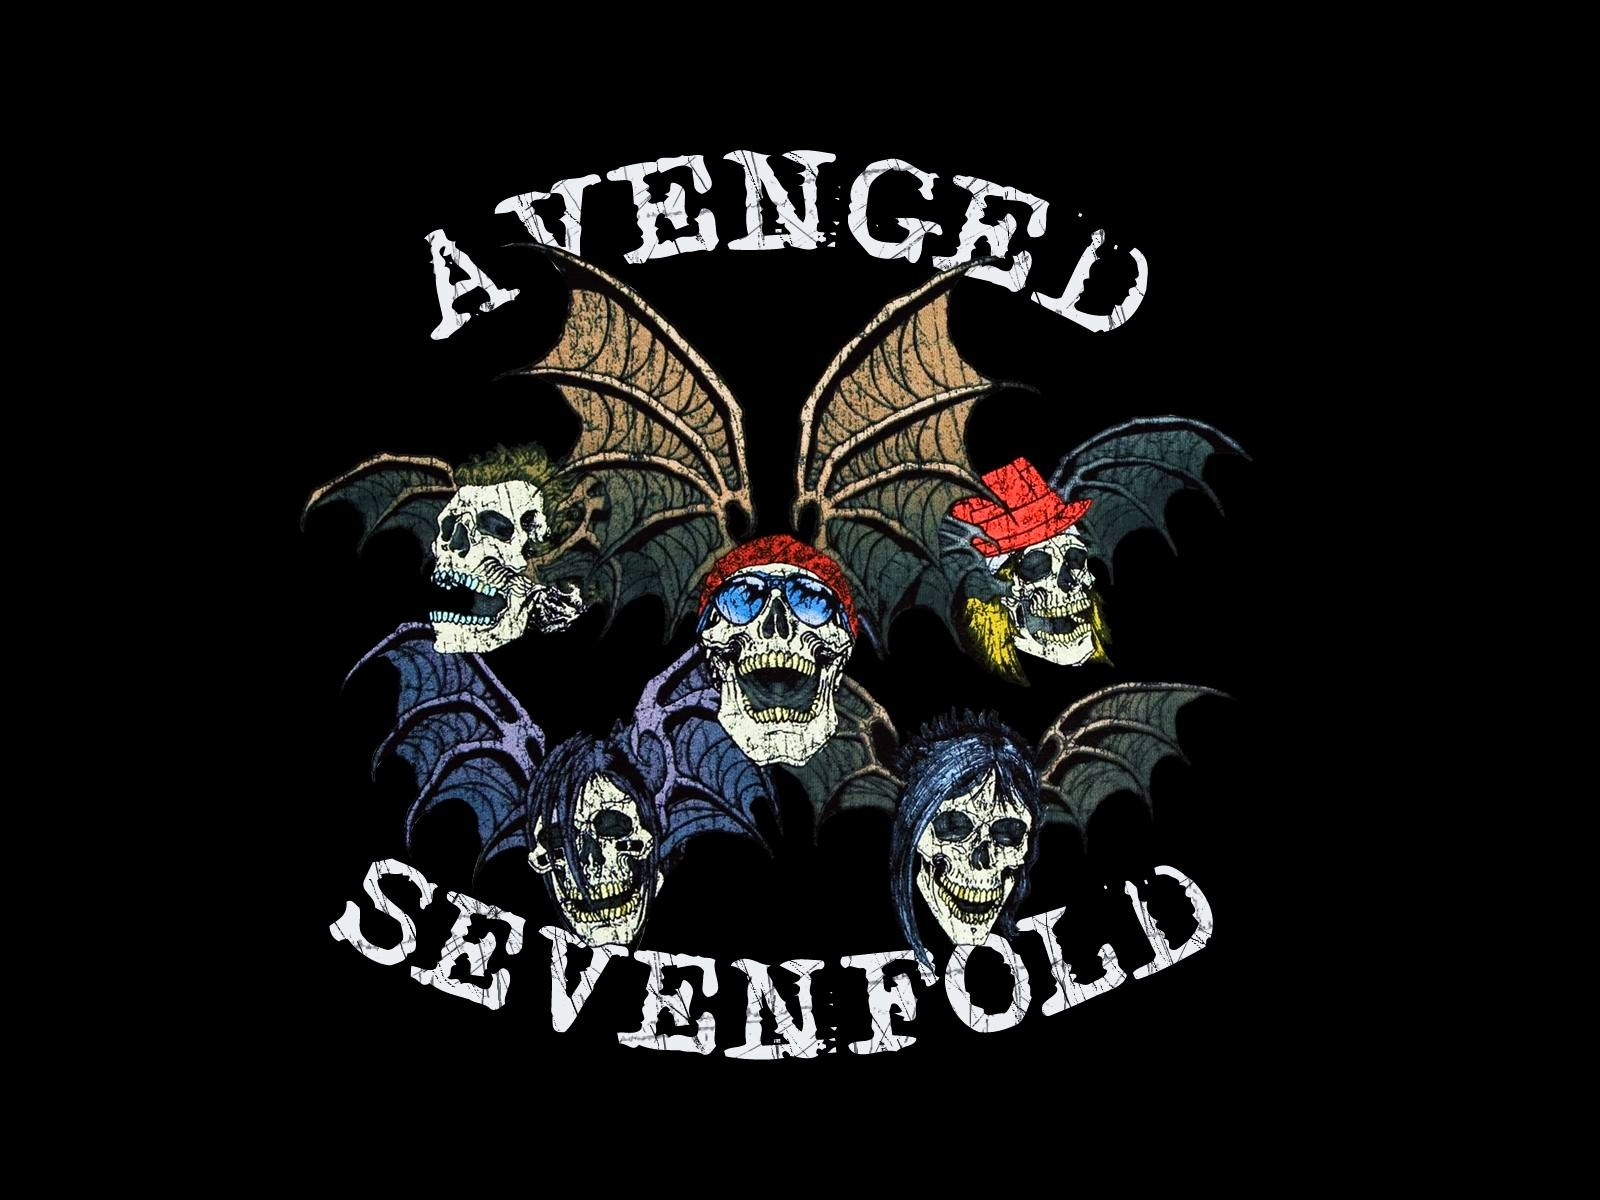 Avenged Sevenfold desktop wallpaper 1600x1200